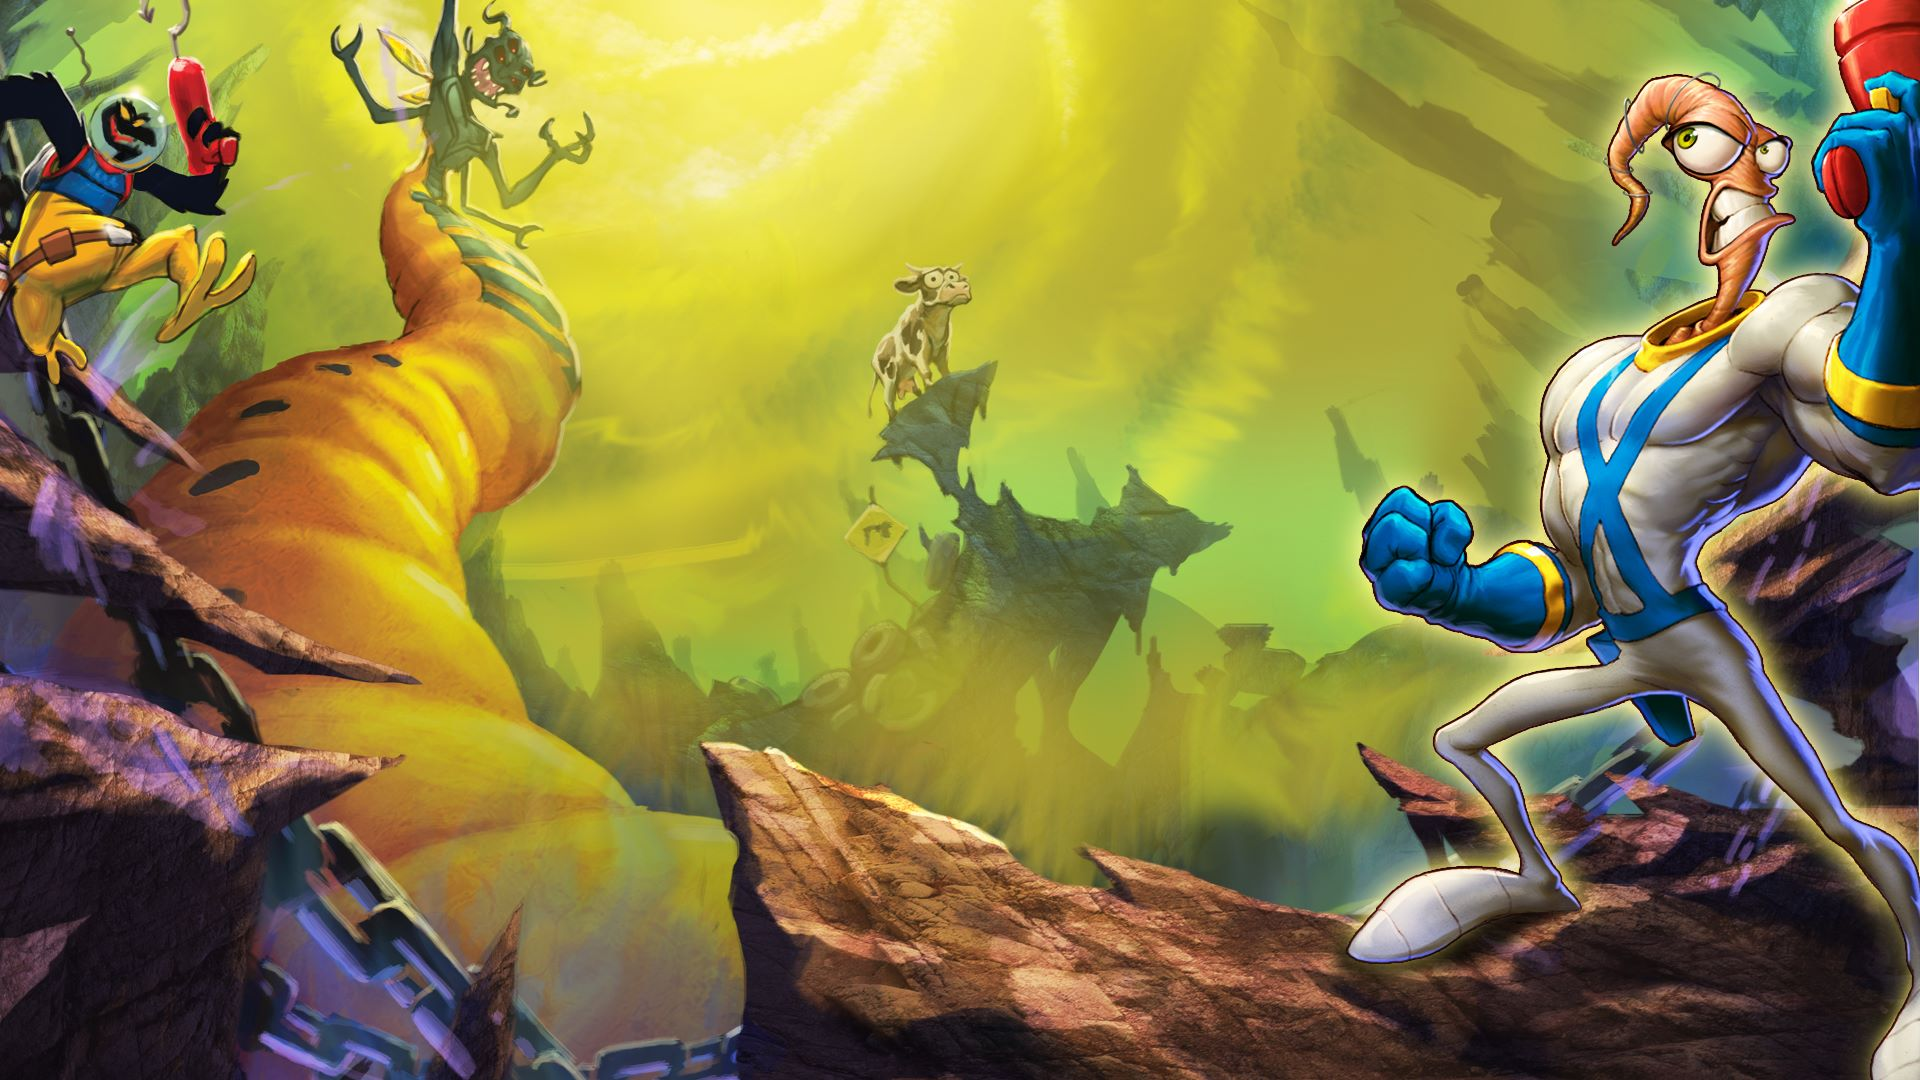 New Earthworm Jim game on the way